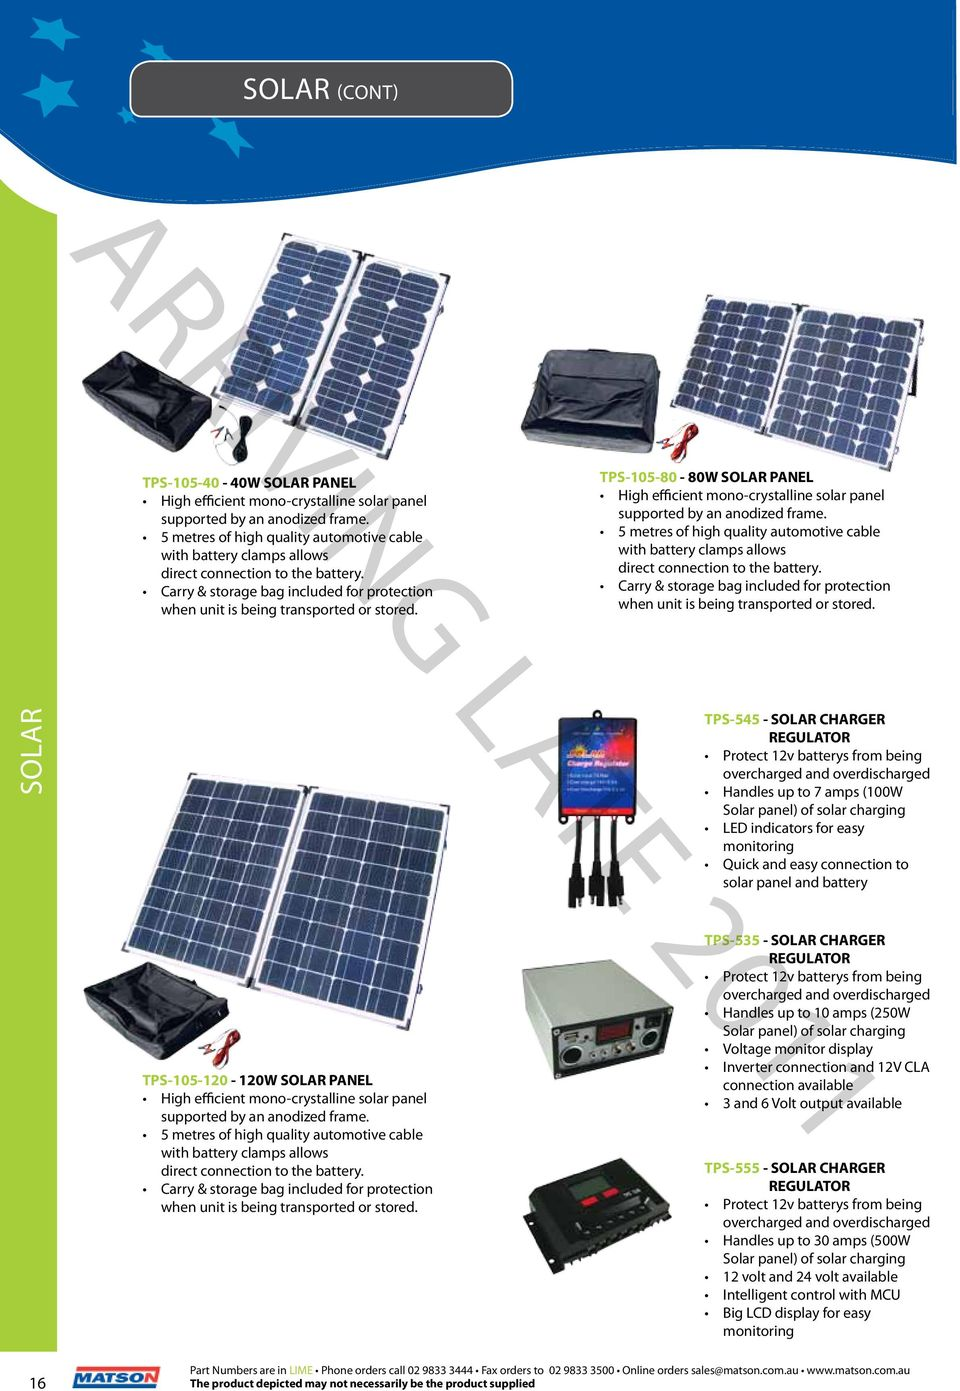 2012 V10 The Professionals Choice Pdf Solar Battery Charger With Overcharge Protection Electronic Tps 105 80 80w Panel High Efficient Mono Crystalline